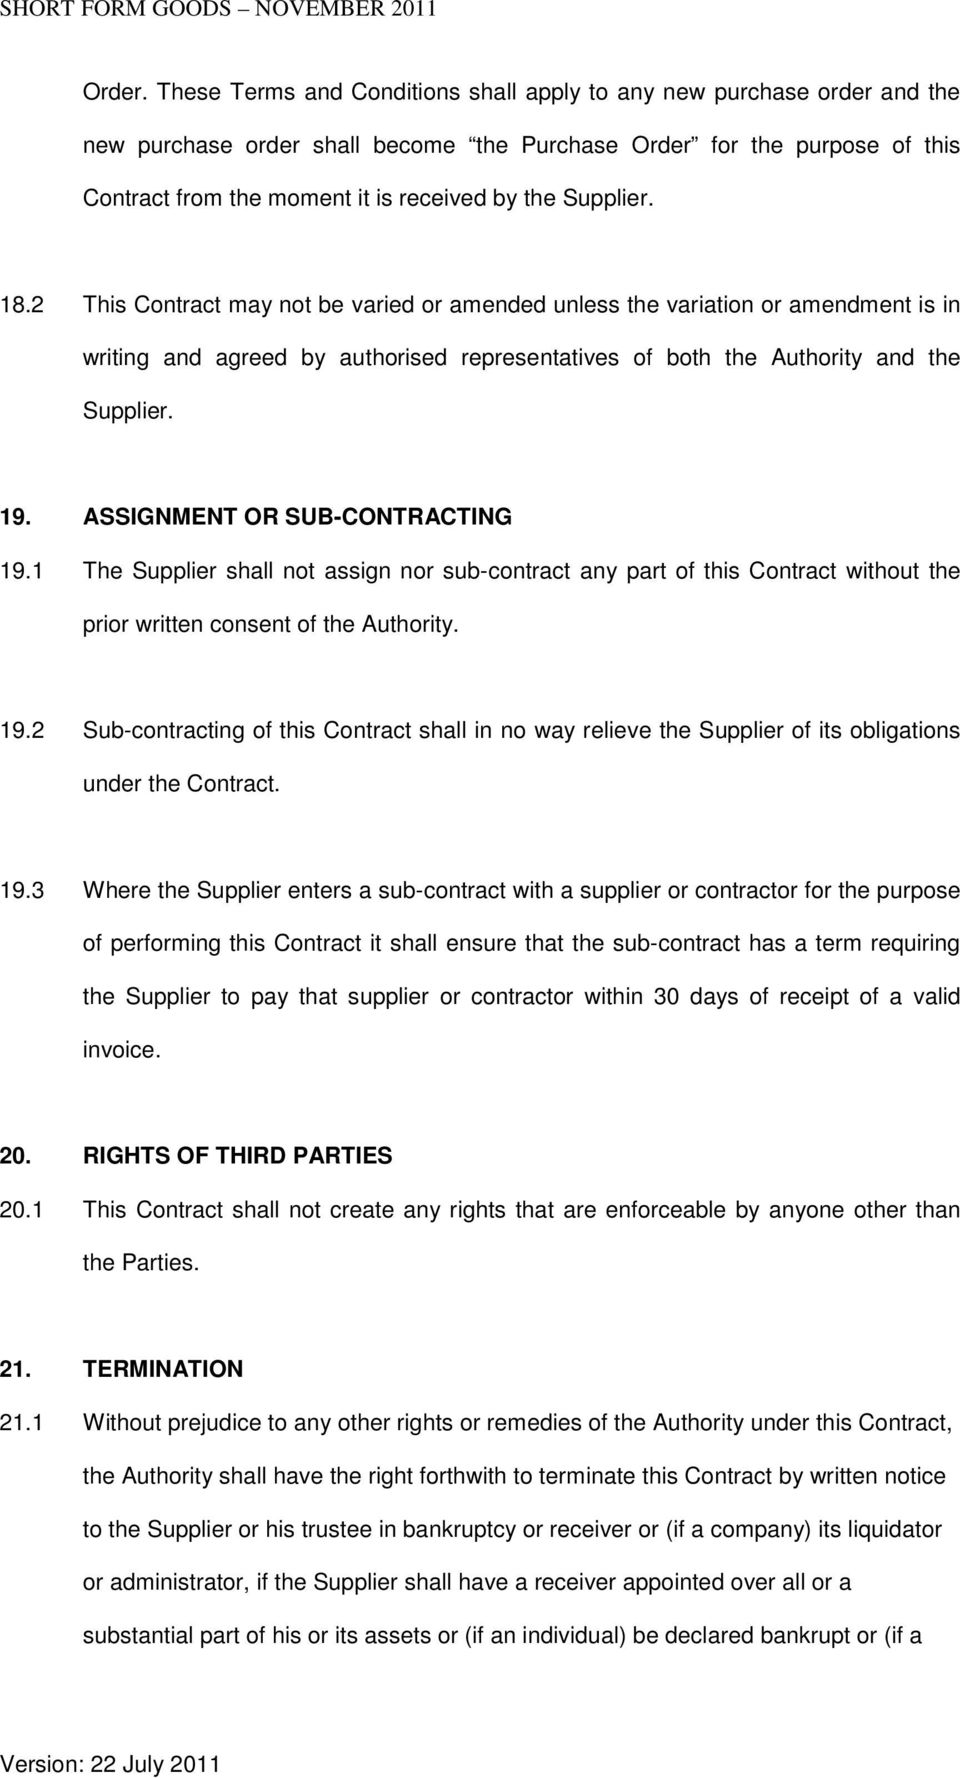 Supplier. 18.2 This Contract may not be varied or amended unless the variation or amendment is in writing and agreed by authorised representatives of both the Authority and the Supplier. 19.